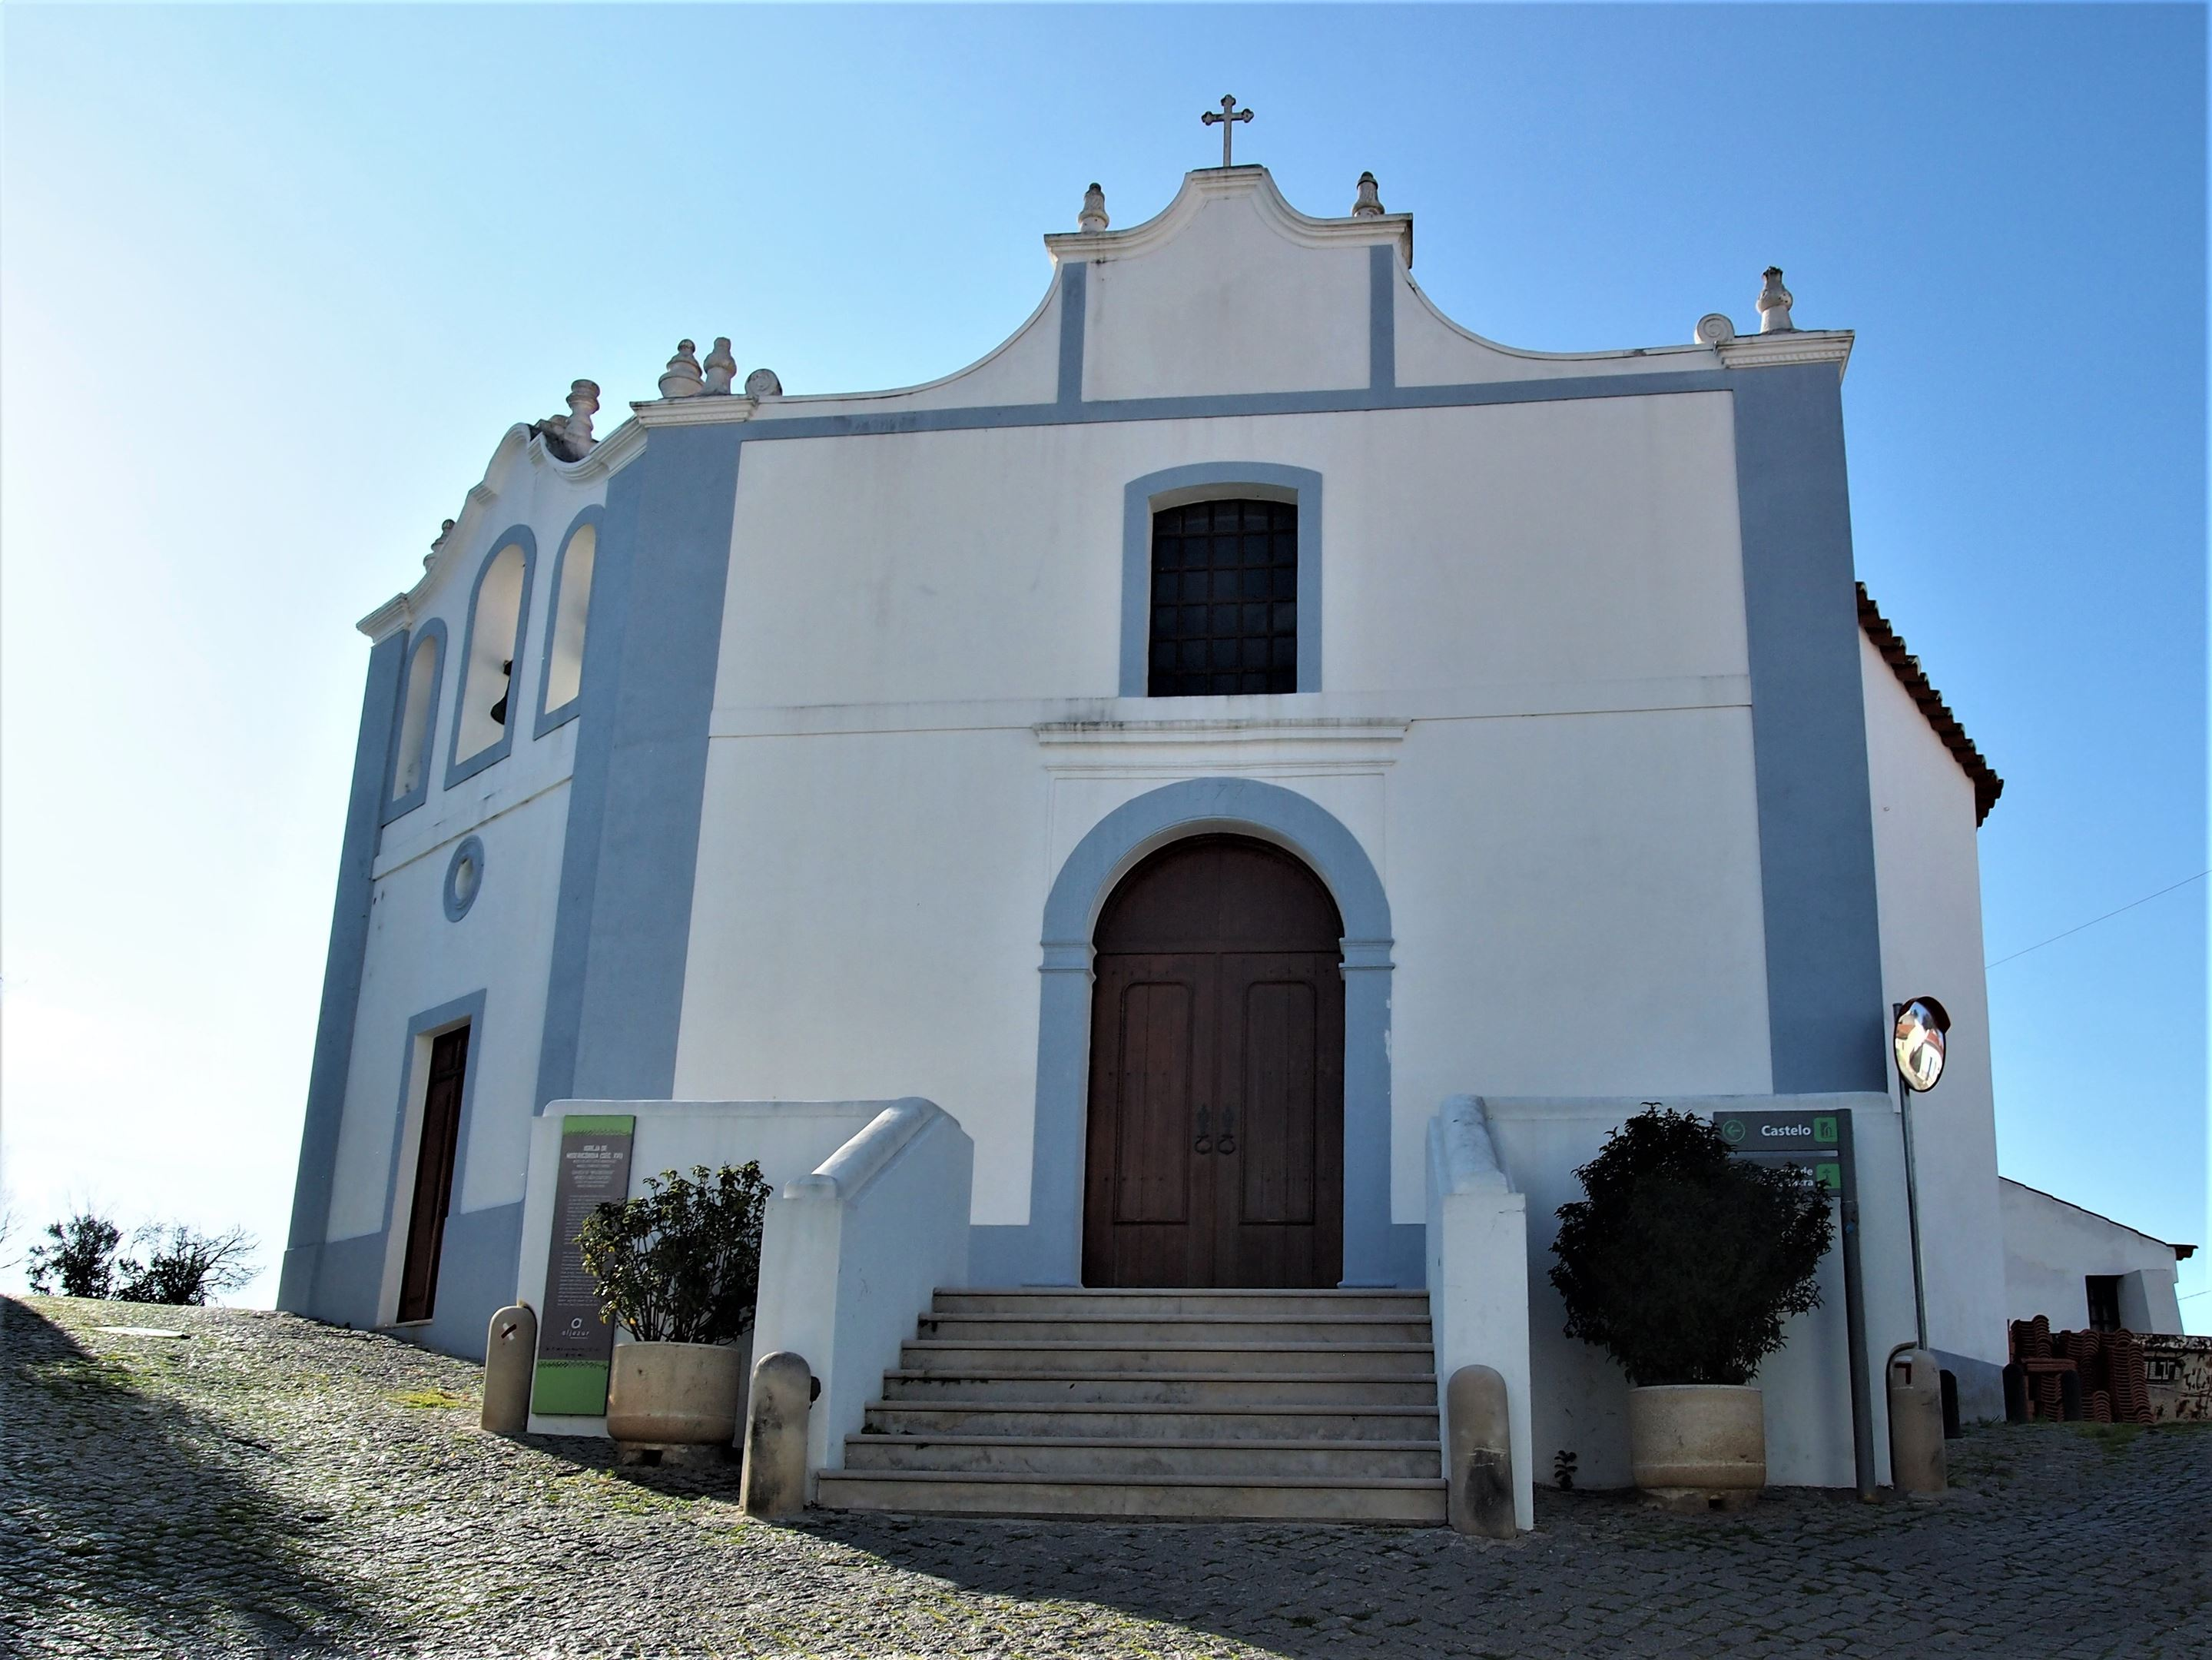 Igreja da Misericórdia, the main church in the old town of Aljezur, Algarve